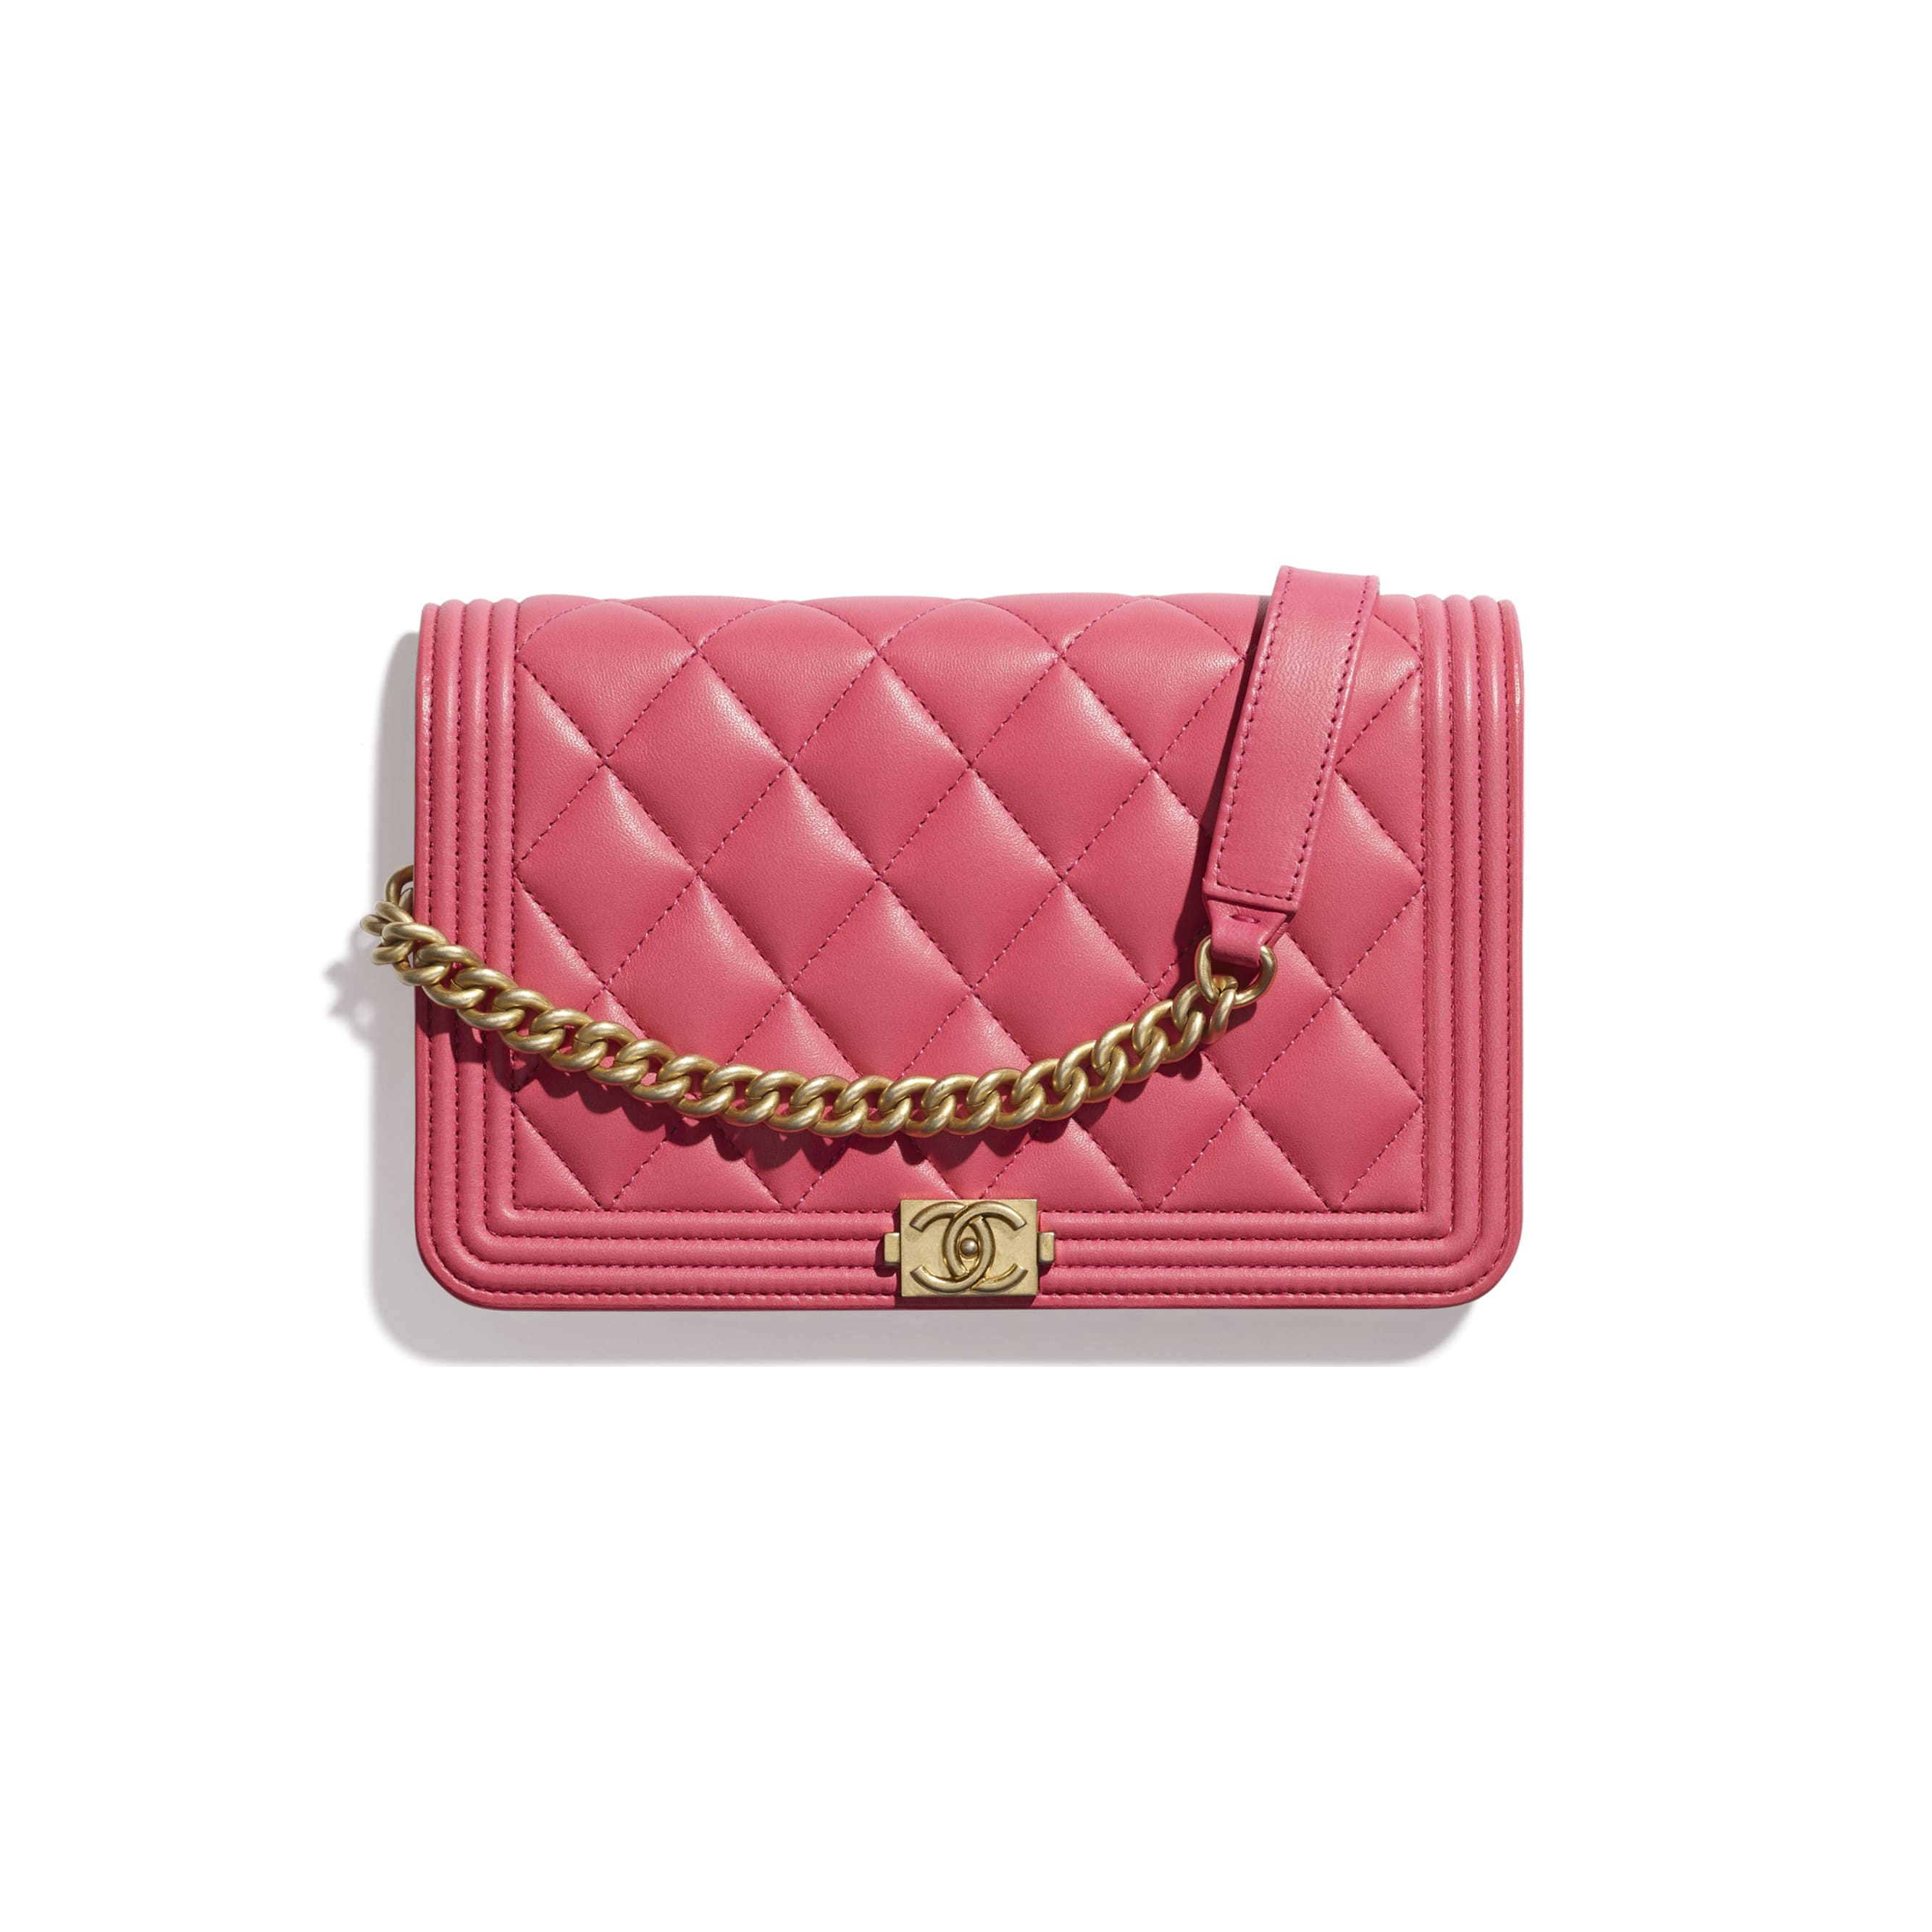 BOY CHANEL Wallet On Chain - Pink - Lambskin - CHANEL - Default view - see standard sized version